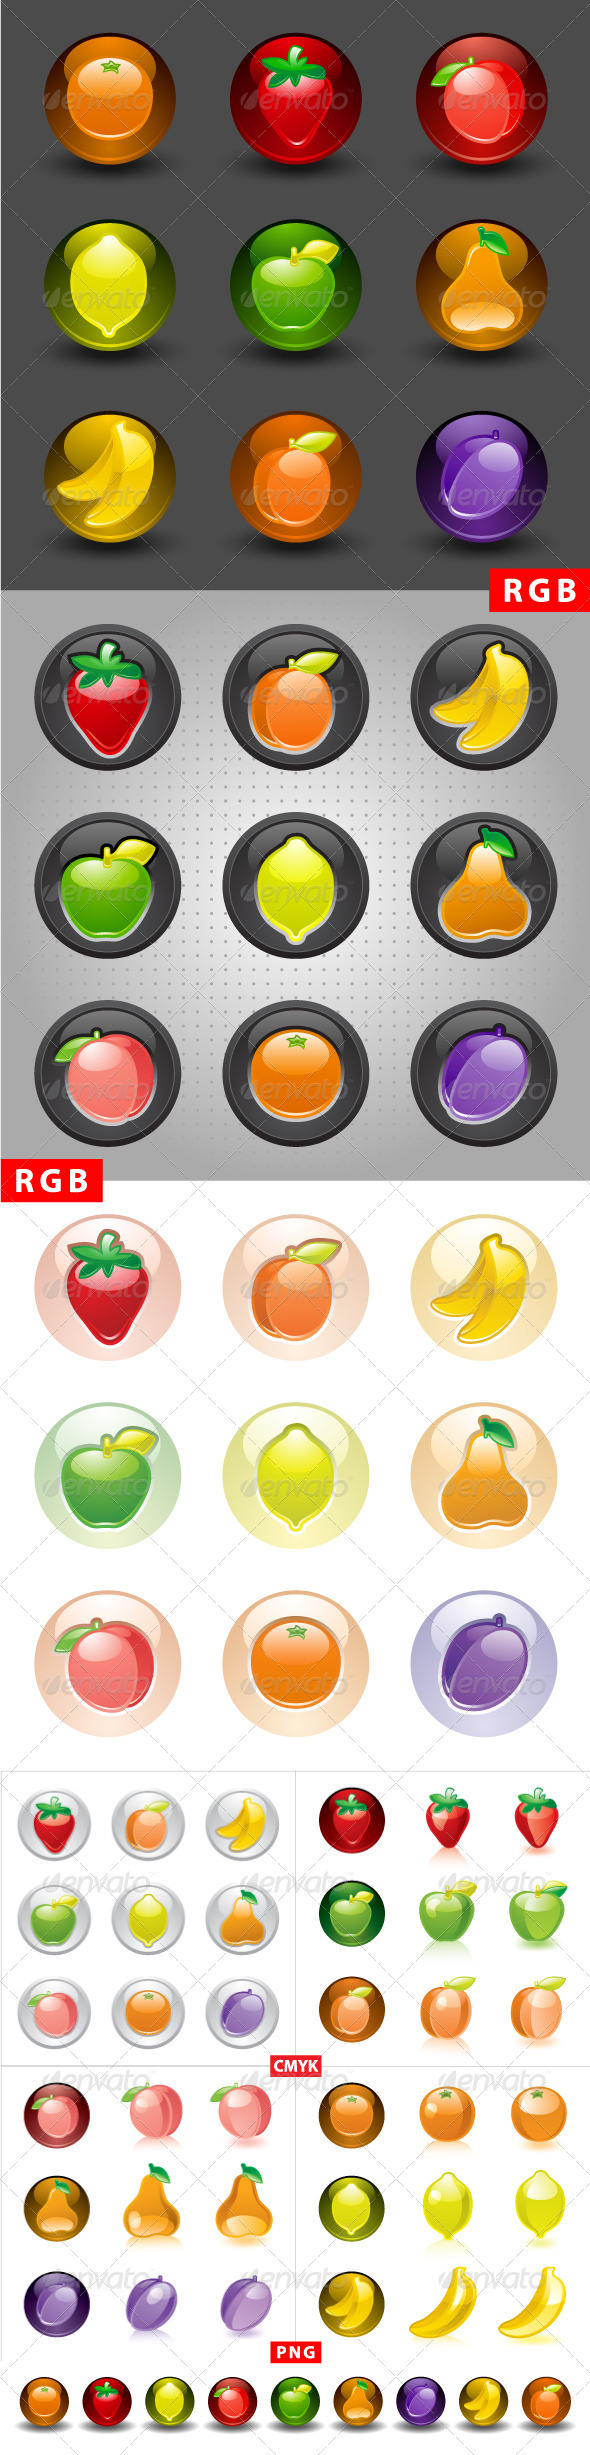 GraphicRiver Fruit buttons web 2.0 icons 3564252